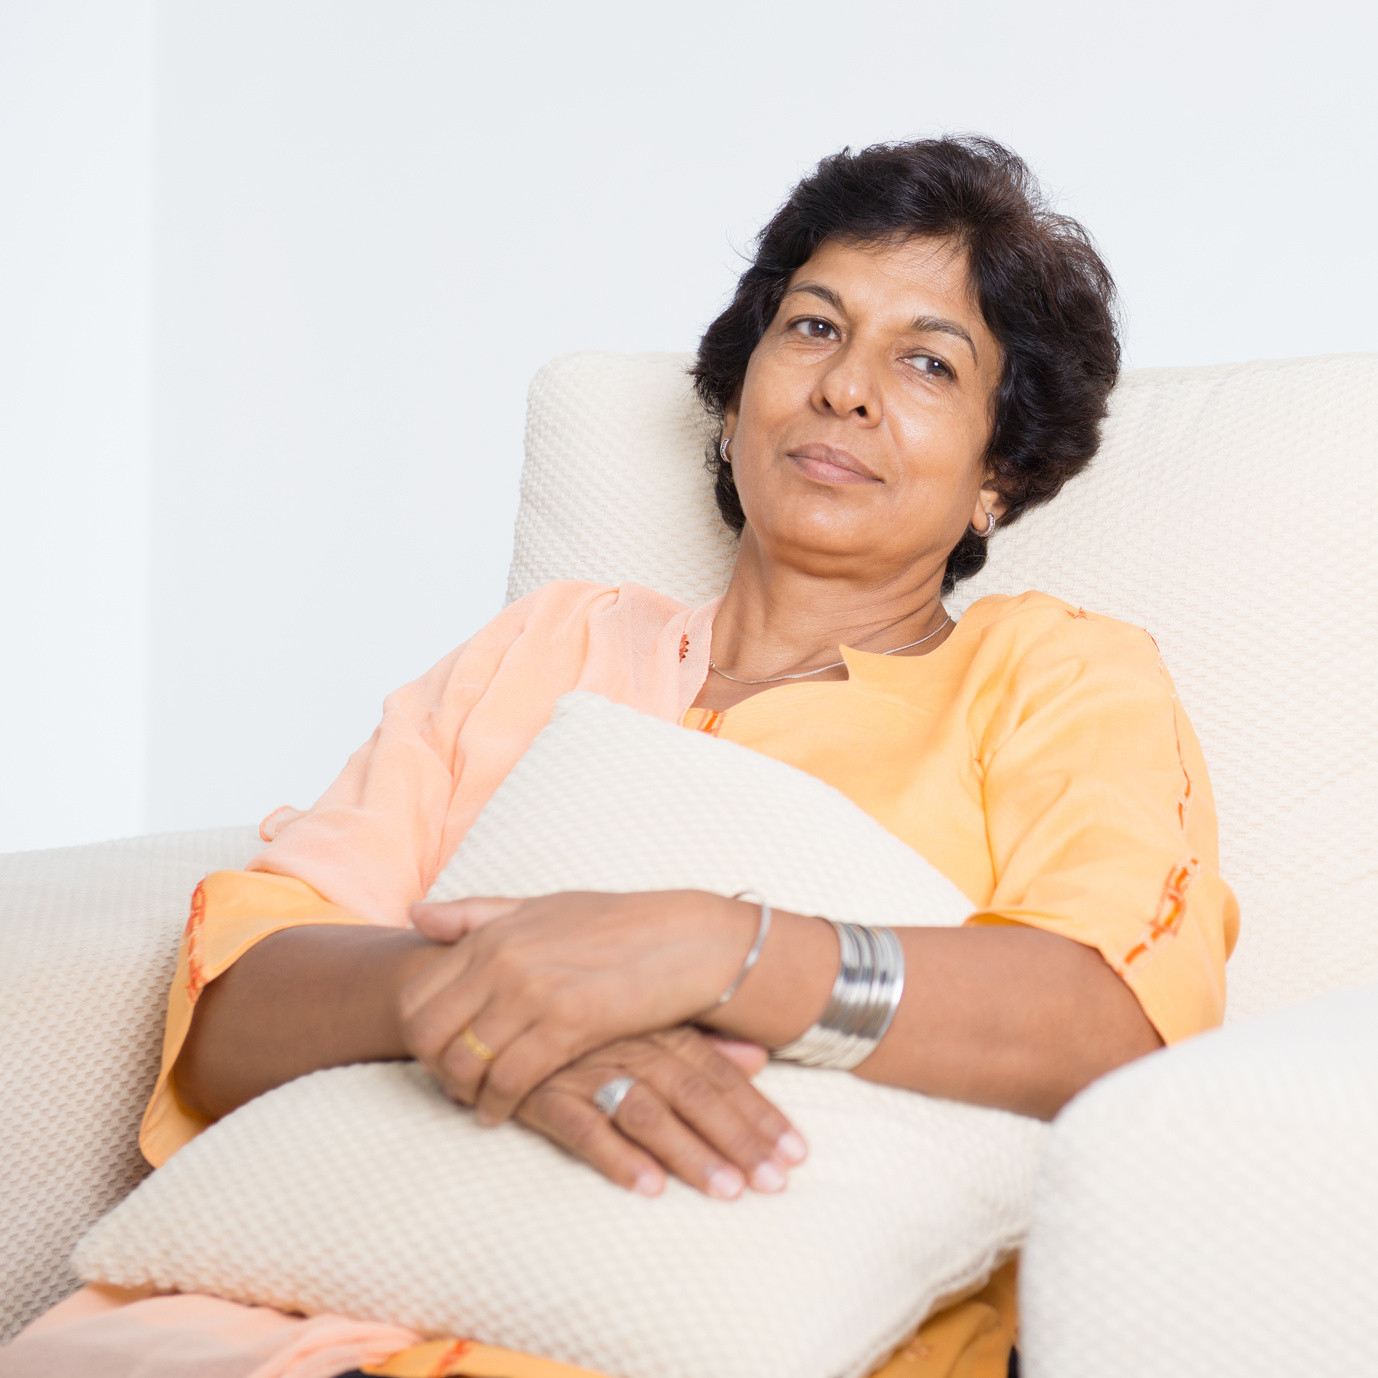 Portrait of a tired 50s Indian mature woman resting on sofa at home. Indoor senior people living lifestyle.